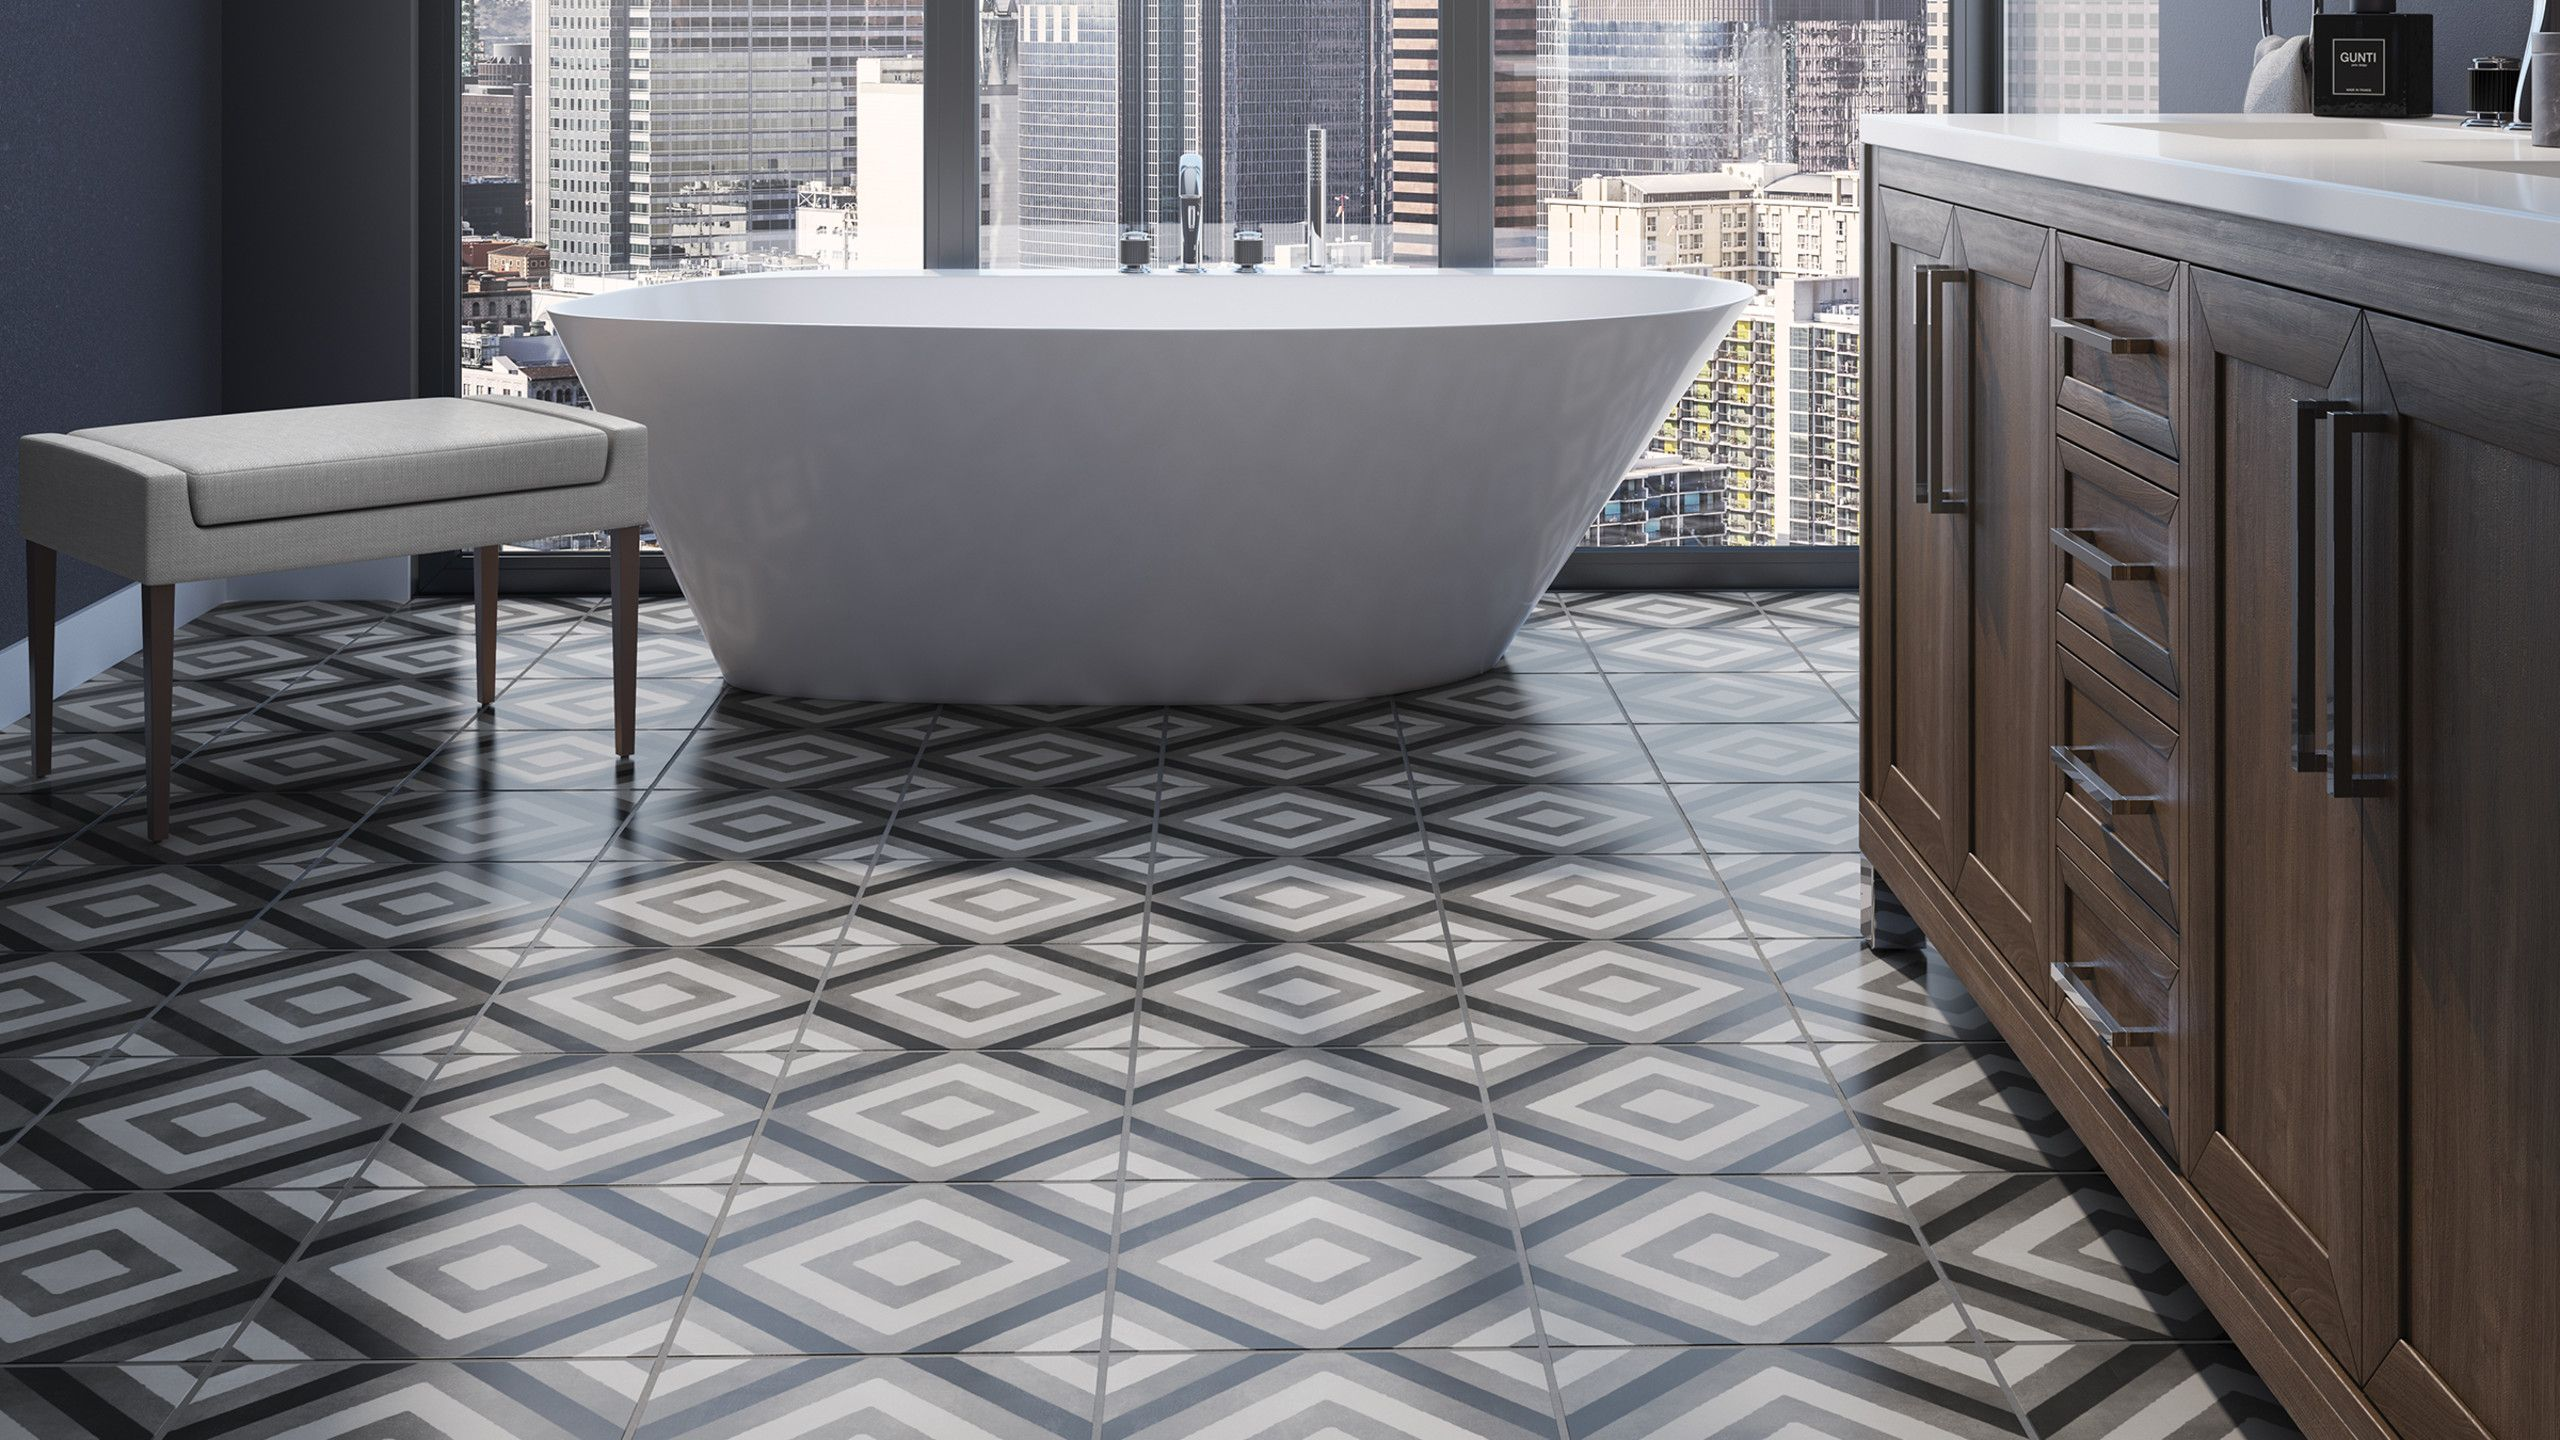 Chateau 12 X 24 Floor Wall Tile In Ocean Decorative Tile Kitchen And Bath Design Modern French Interiors